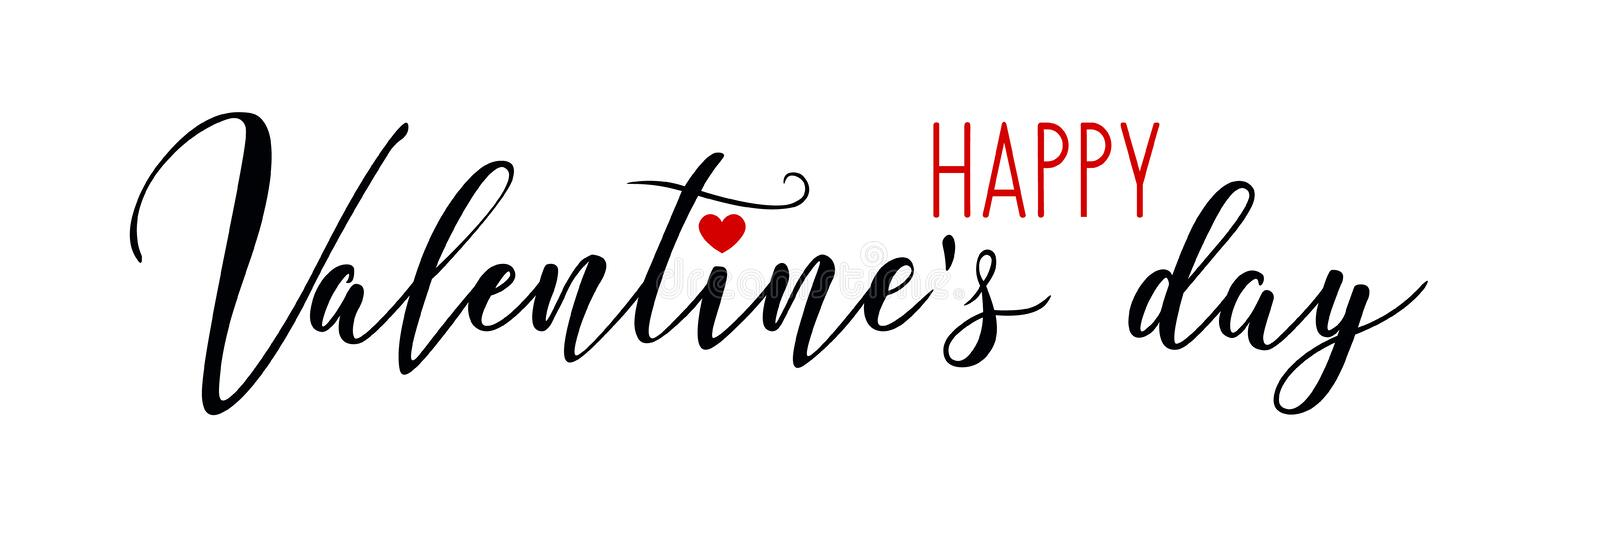 Happy Valentine`s day. Hand drawn creative calligraphy and brush pen lettering isolated on white background. design for holiday gr. Eeting card and invitation royalty free illustration